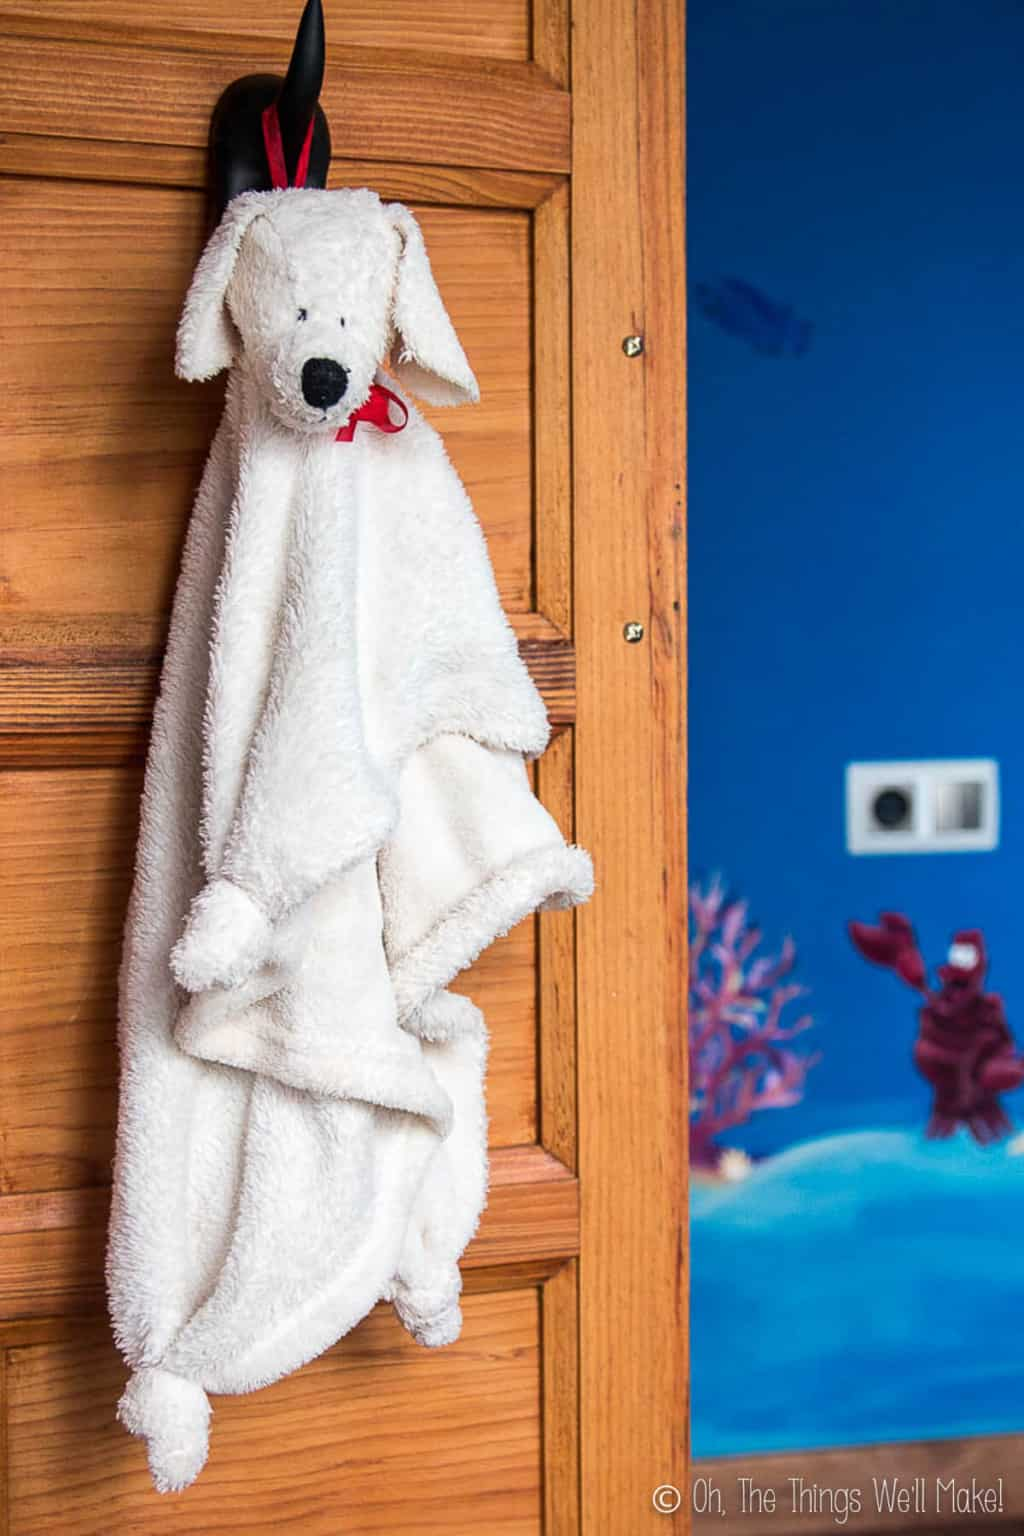 A white fluffy puppy blanket with a stuffed puppy head hanging from the hook on a wood closet door.